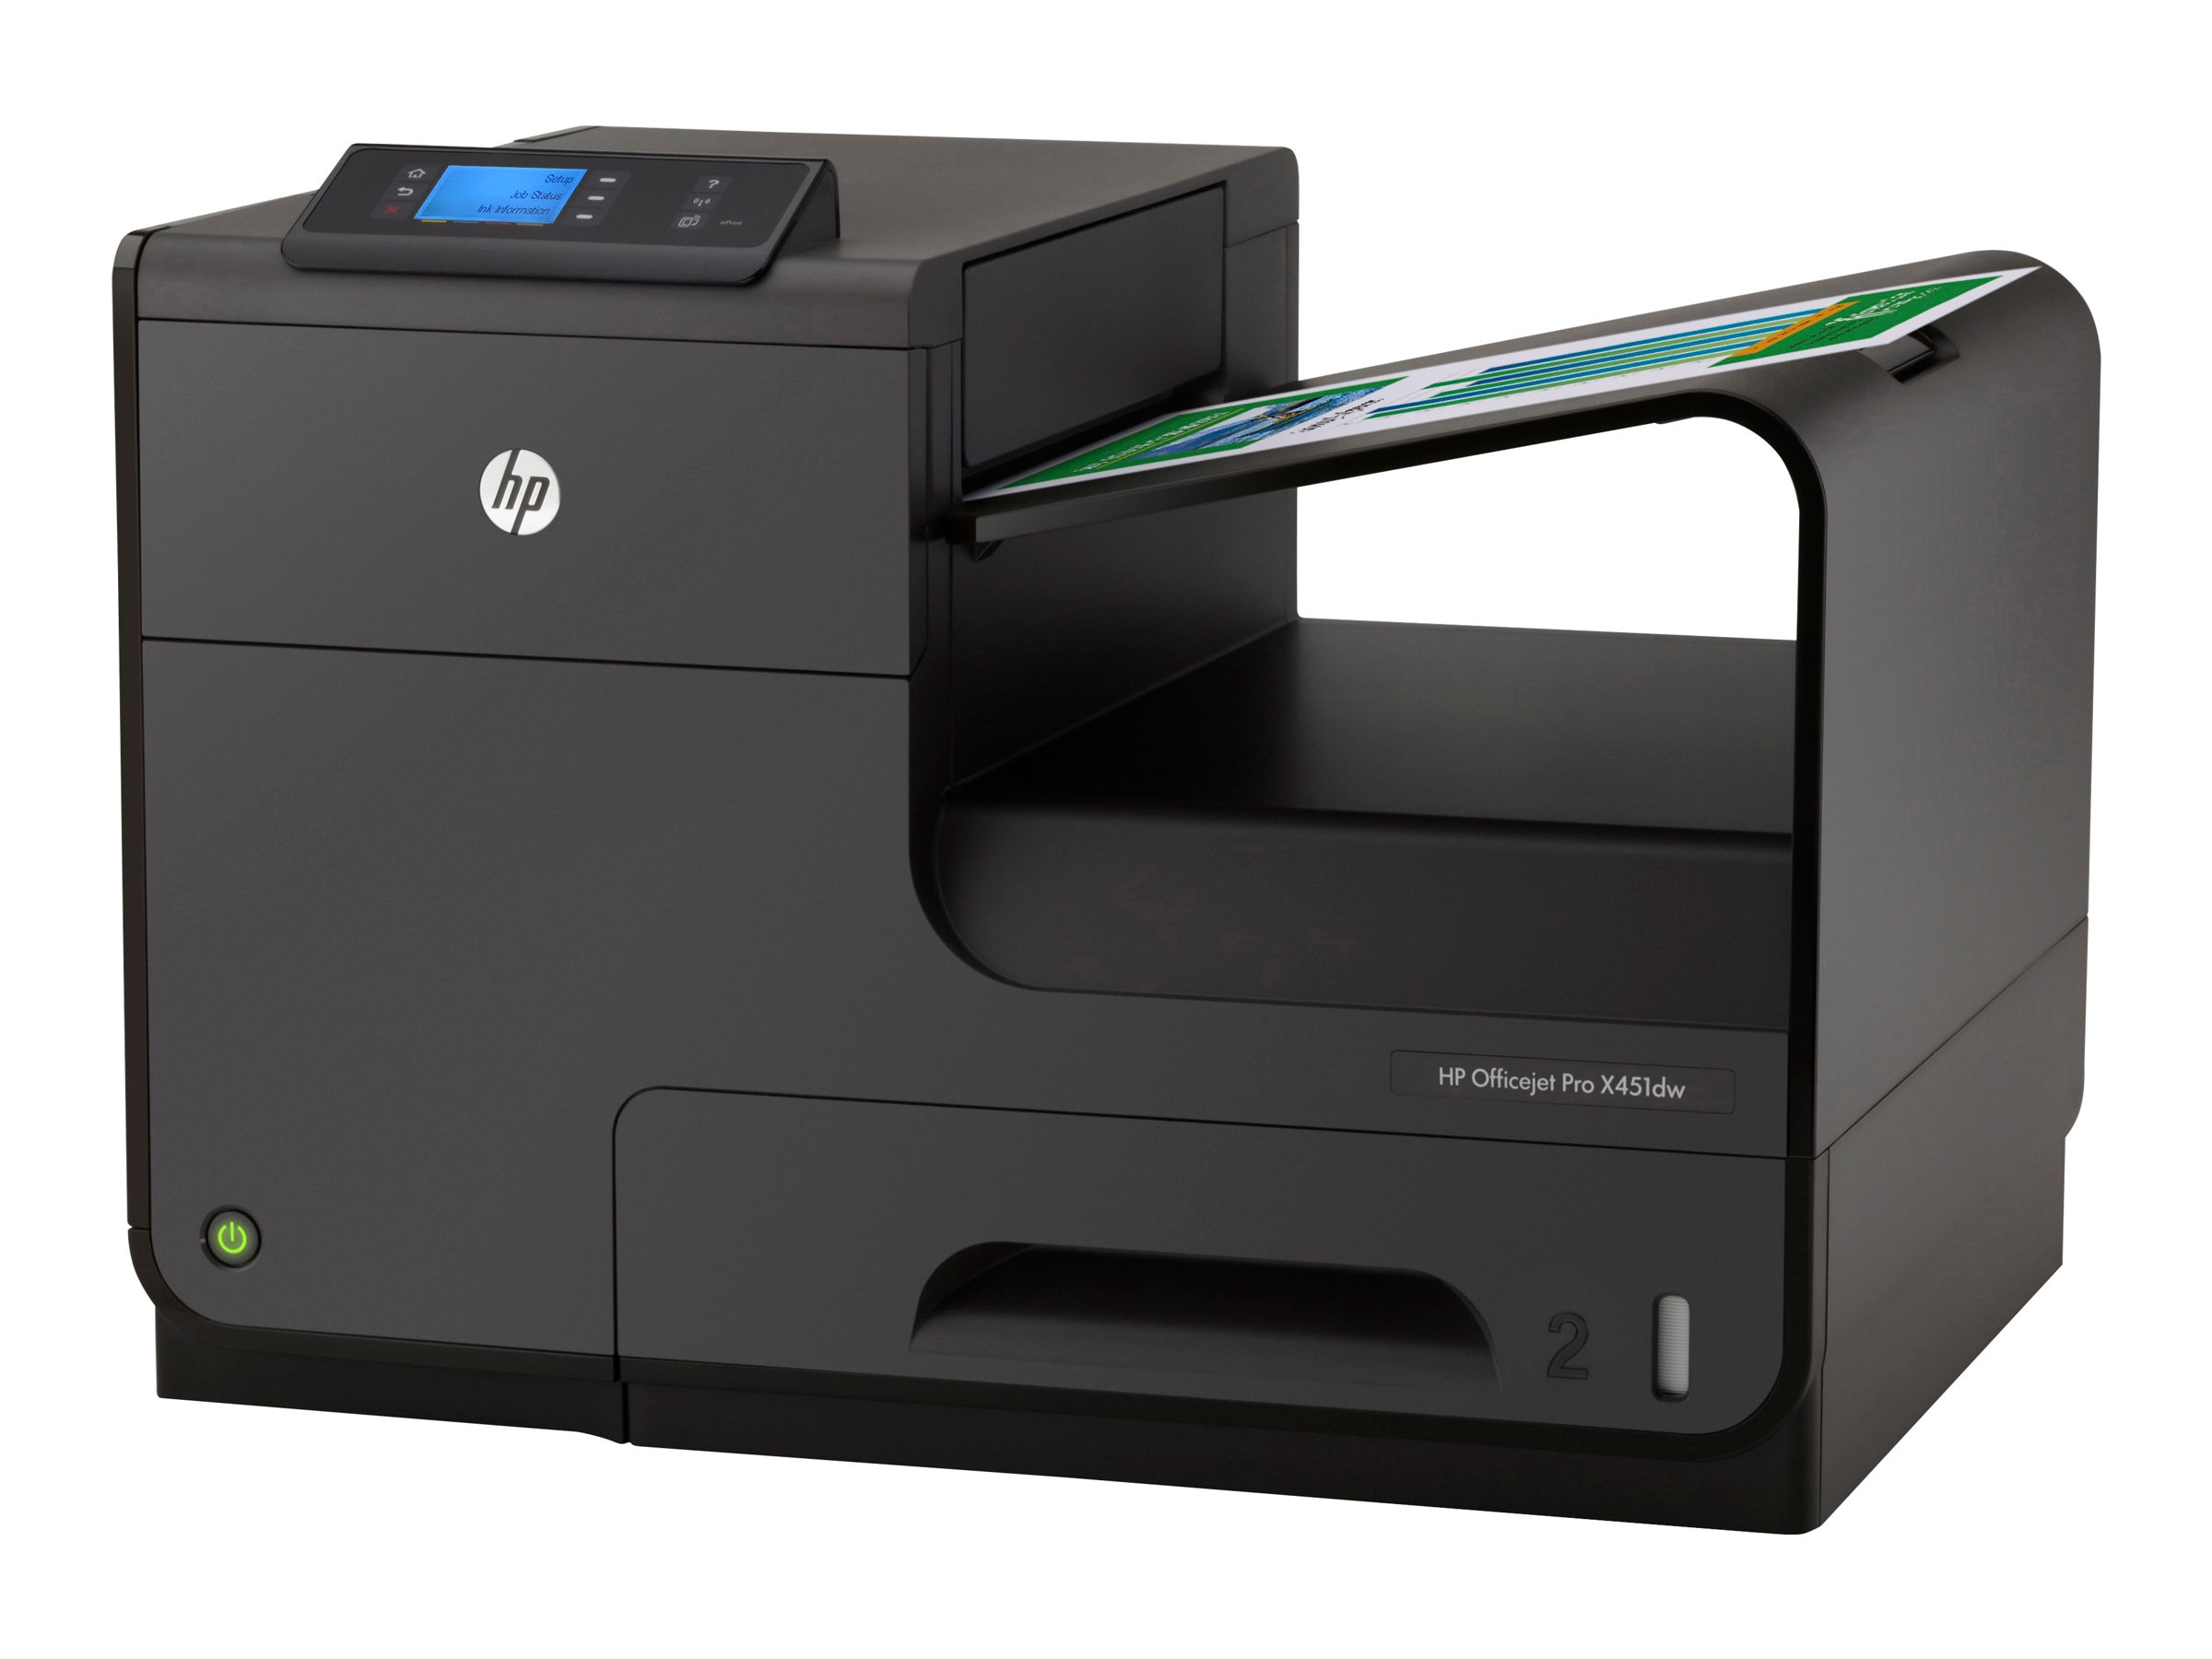 HP Officejet Pro X Series X451dw Color Printer, CN463A#B1H, 15056808, Printers - Ink-jet